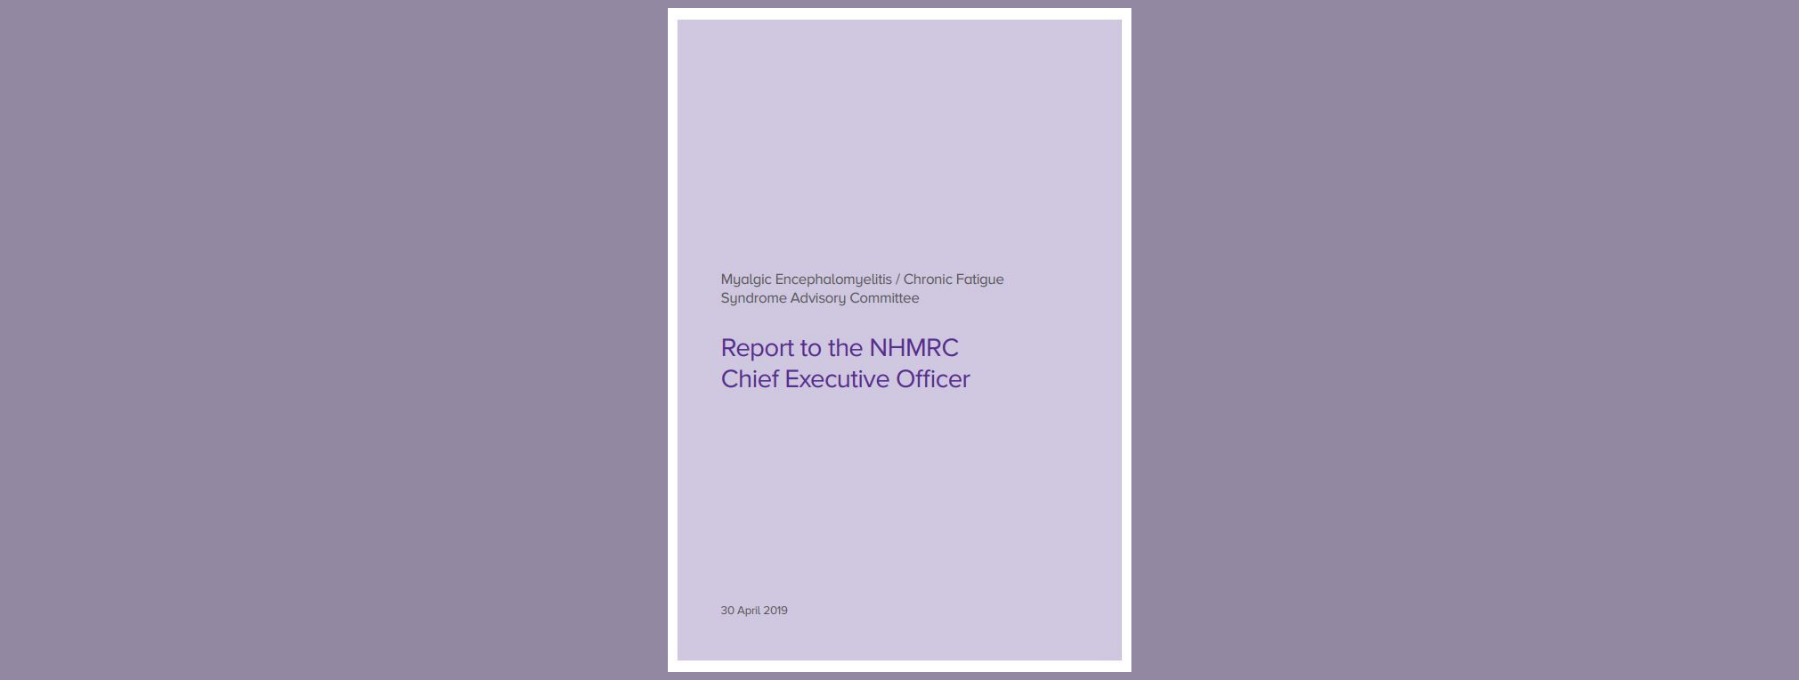 H/P Government Reports NHMRC 1800 x 680 1